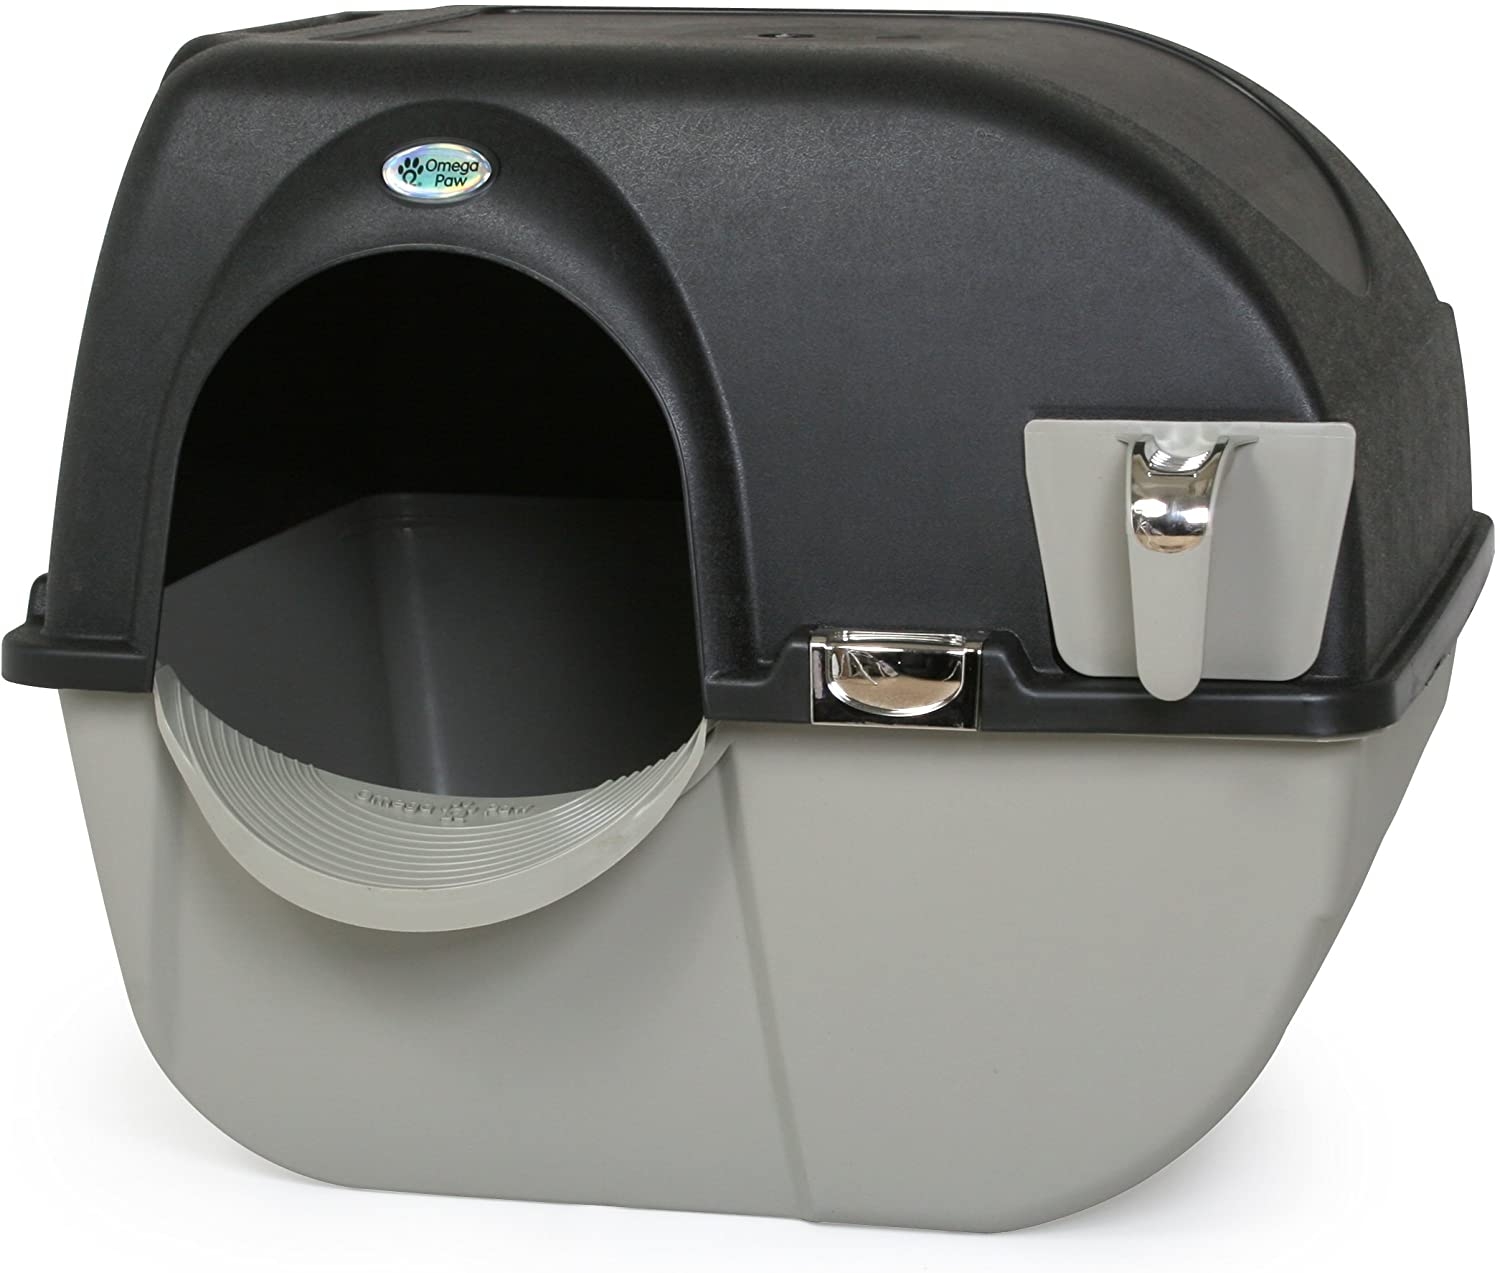 Omega Paw Now free shipping Elite Self Cleaning Fashionable Large Litter Box EL-RA20-1